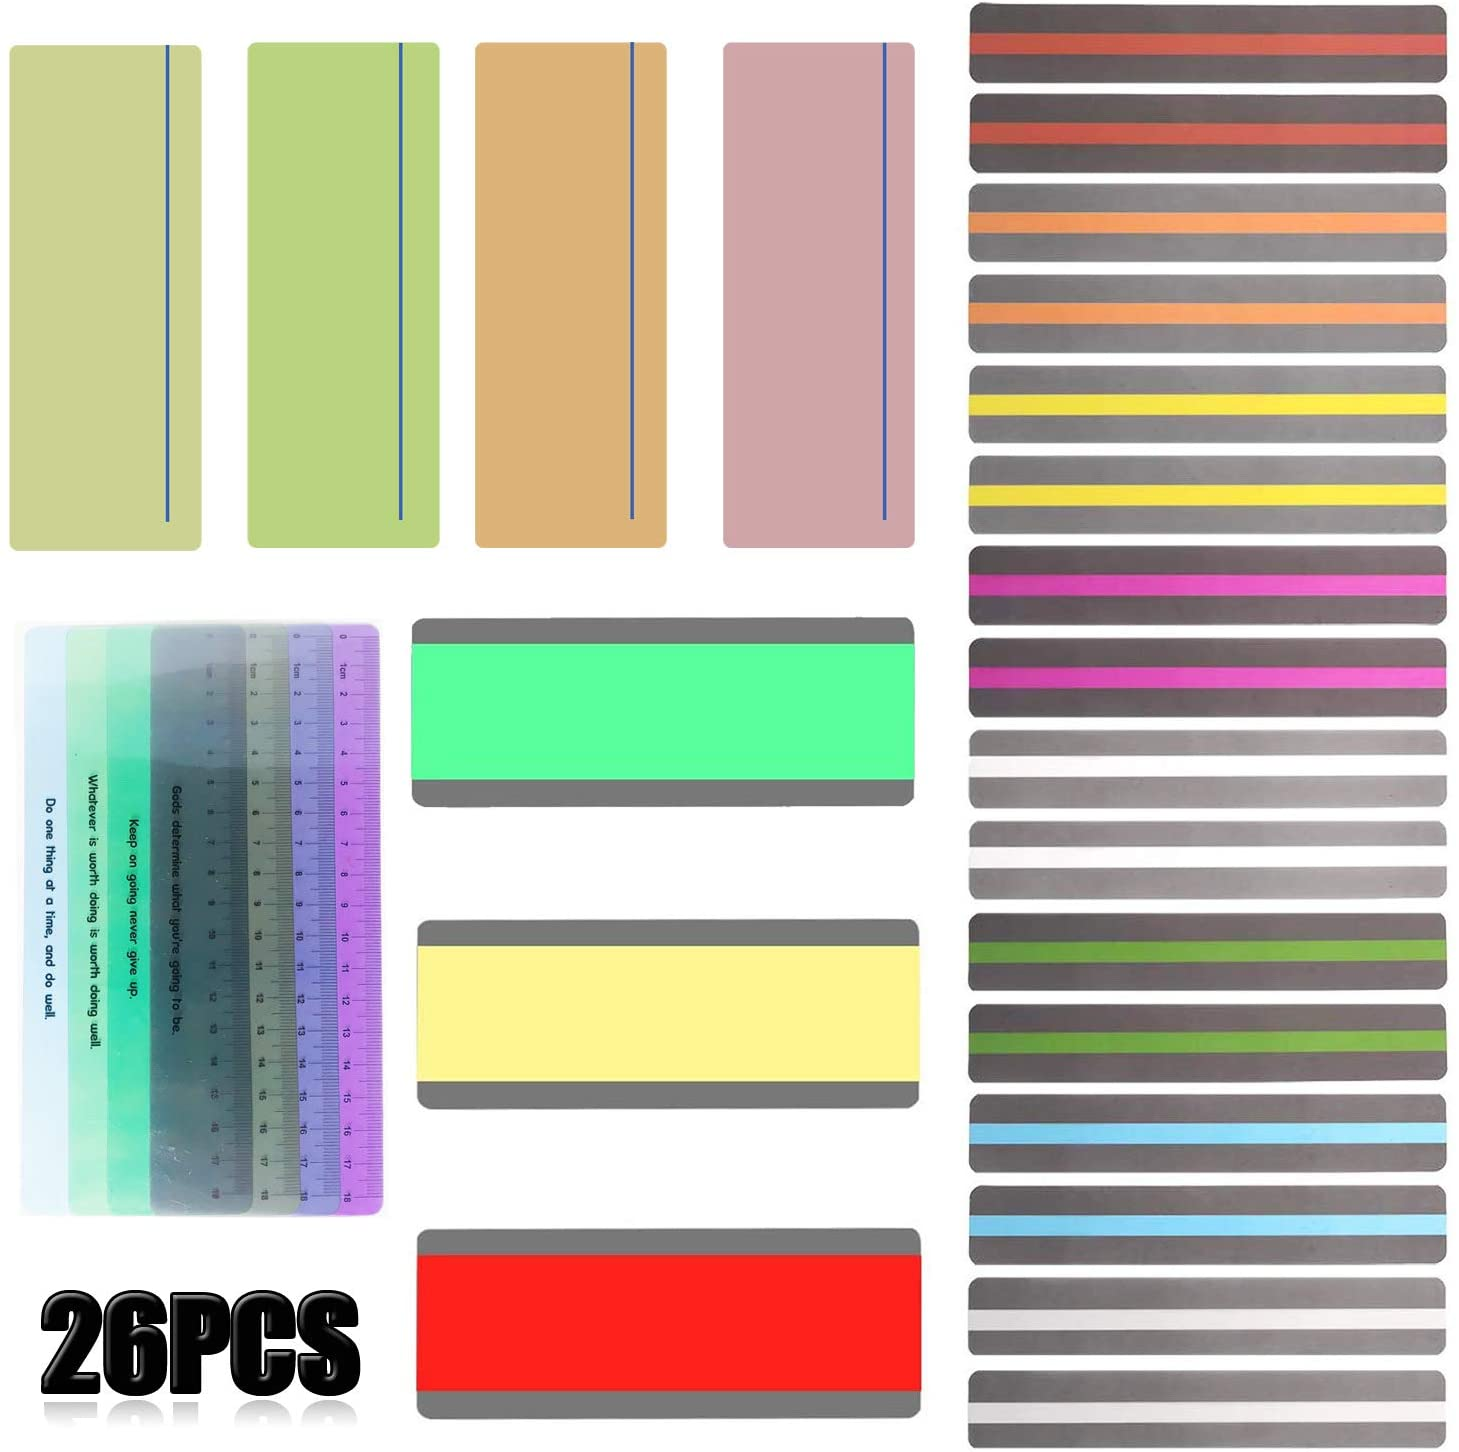 Seasonsky 27 Pack Reading Guide Highlight Strips Colored Overlays Bookmarks Reading Tracking Rulers for Teachers, Childrenand Dyslexics